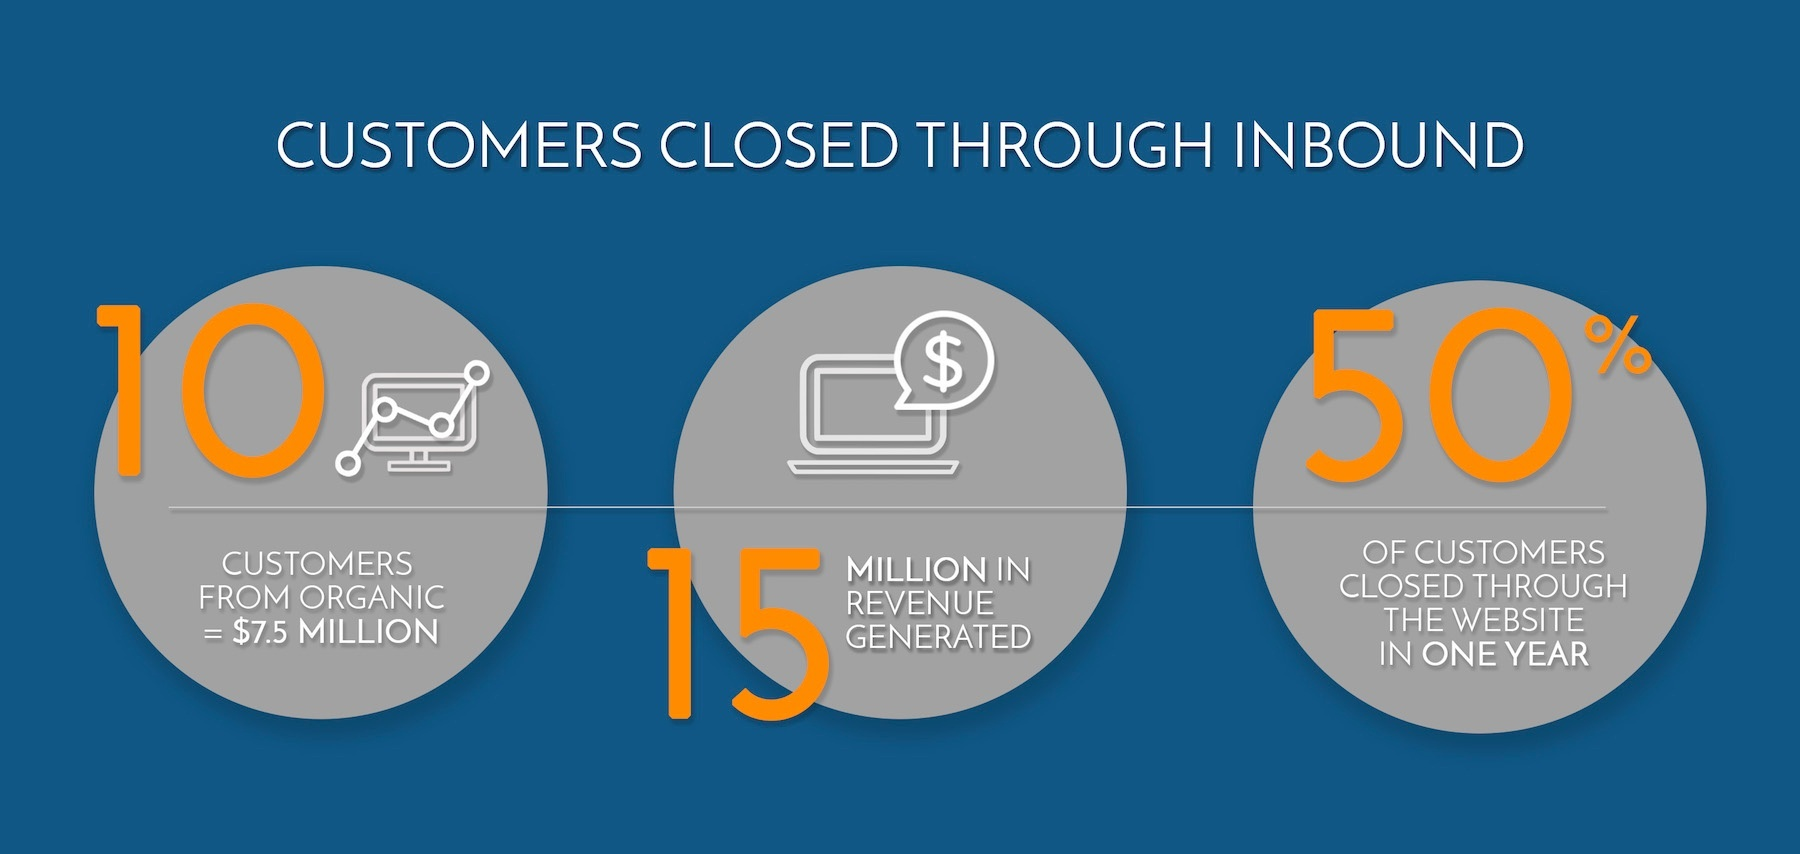 Nextiny Marketing Customers Closed through Inbound